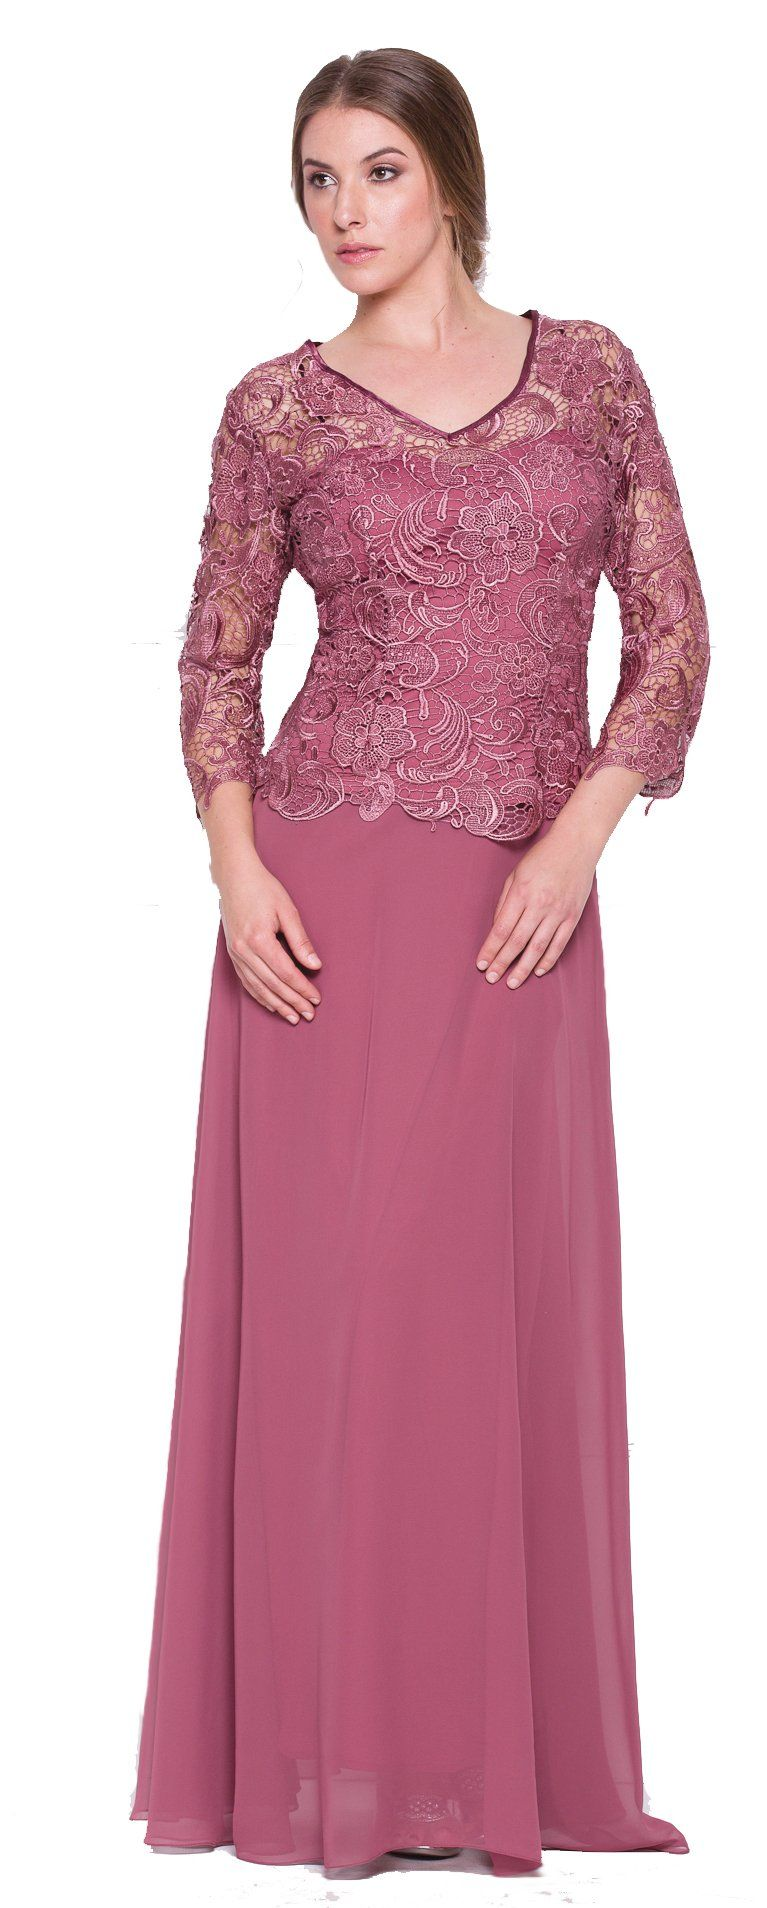 Mother of the Bride Formal Gown 5040NX-ROSEWOOD-M   evenining dress ...